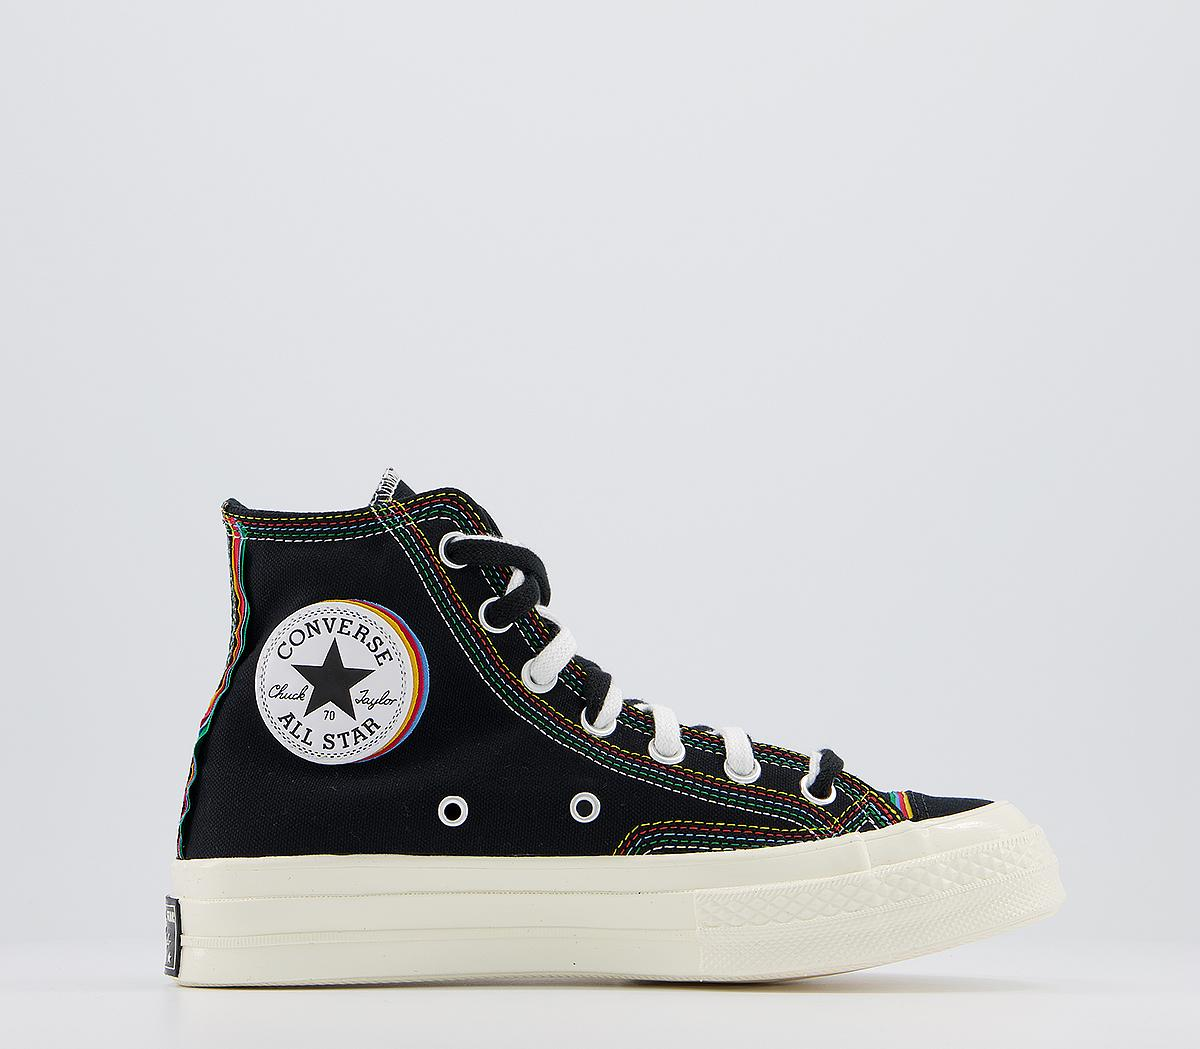 Converse All Star Hi 70 S Trainers